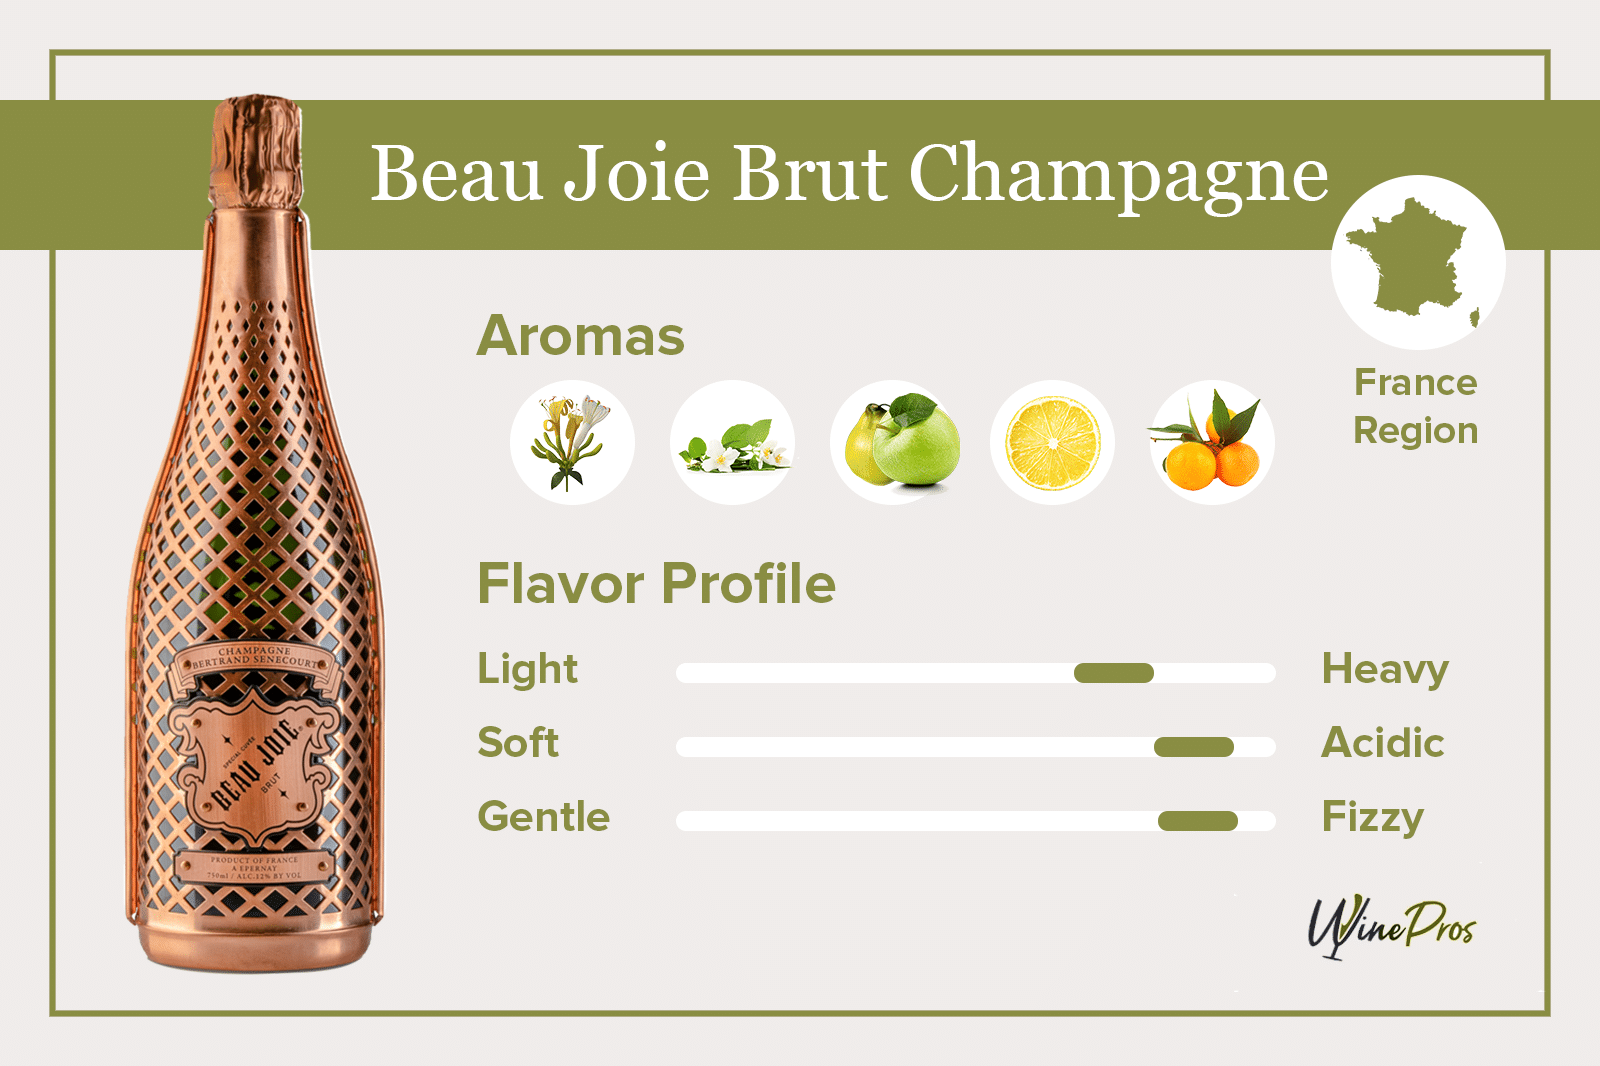 Beau Joie Brut Champagne Review (2021)